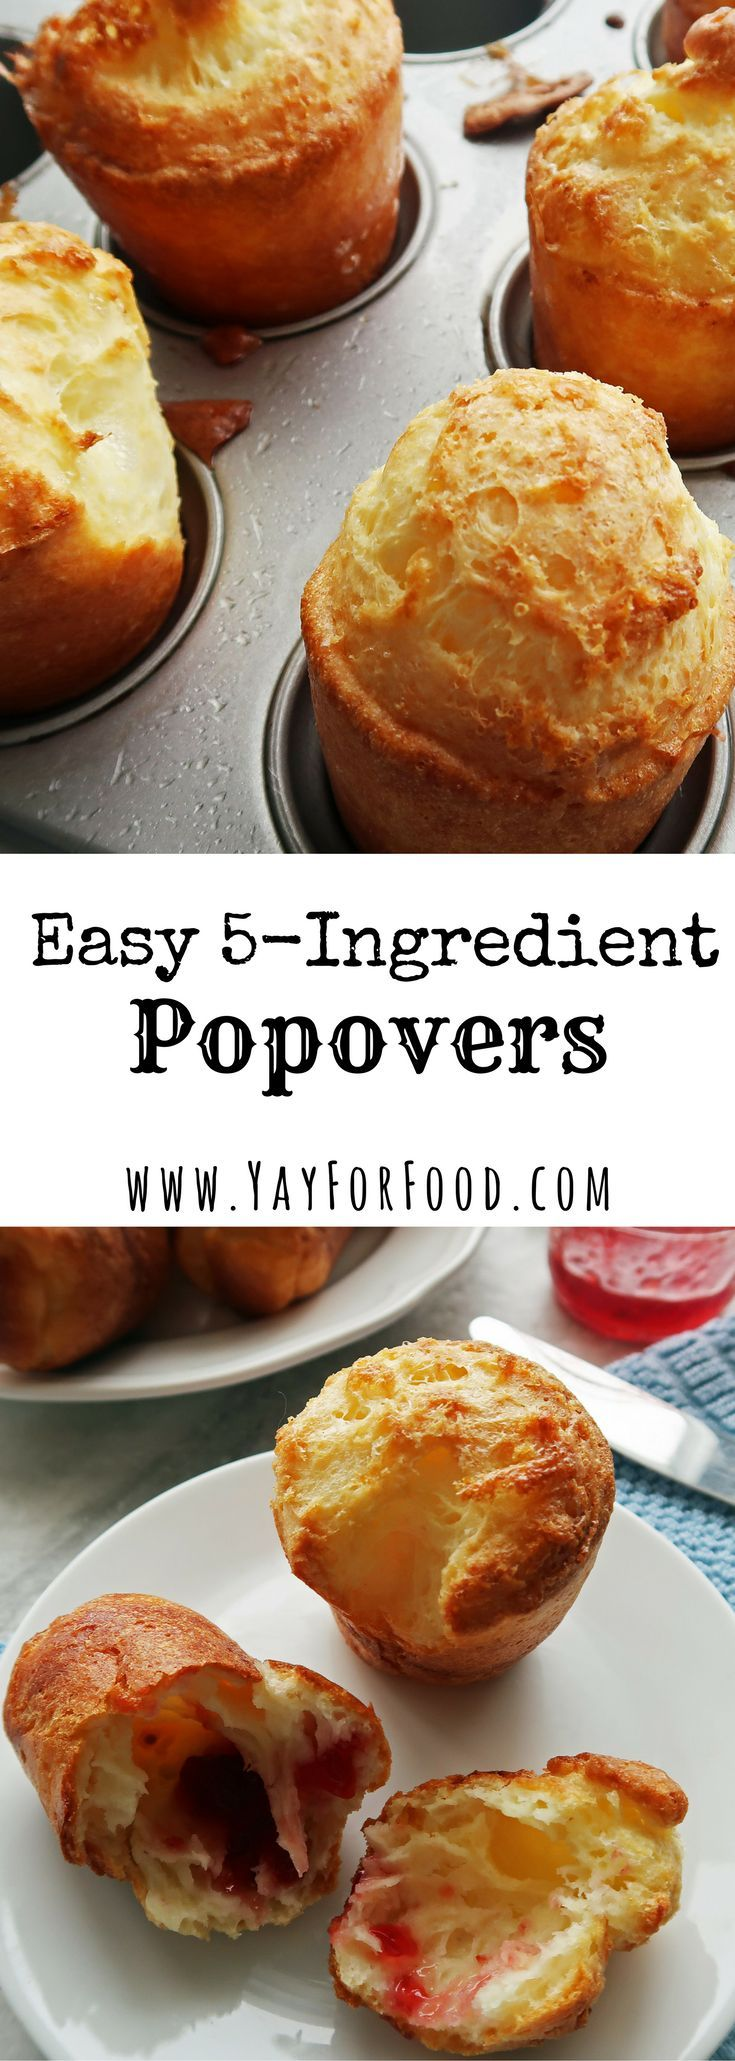 Puffed, flaky, and golden brown. Popovers are great as a side dish or treat that you can have with an entree or on its own. The hollowed insides are perfect for holding butter or fruit jams.